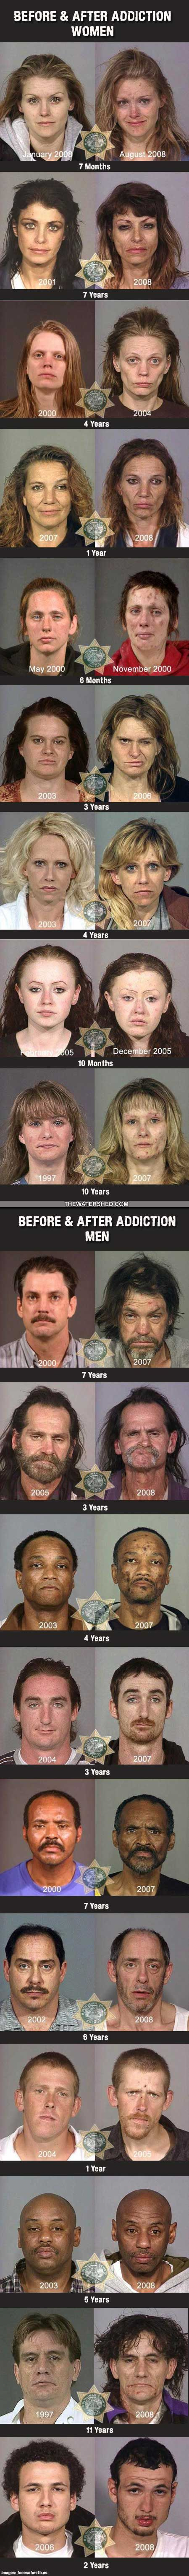 From drugs to mugs: Meths devastating effects (images)